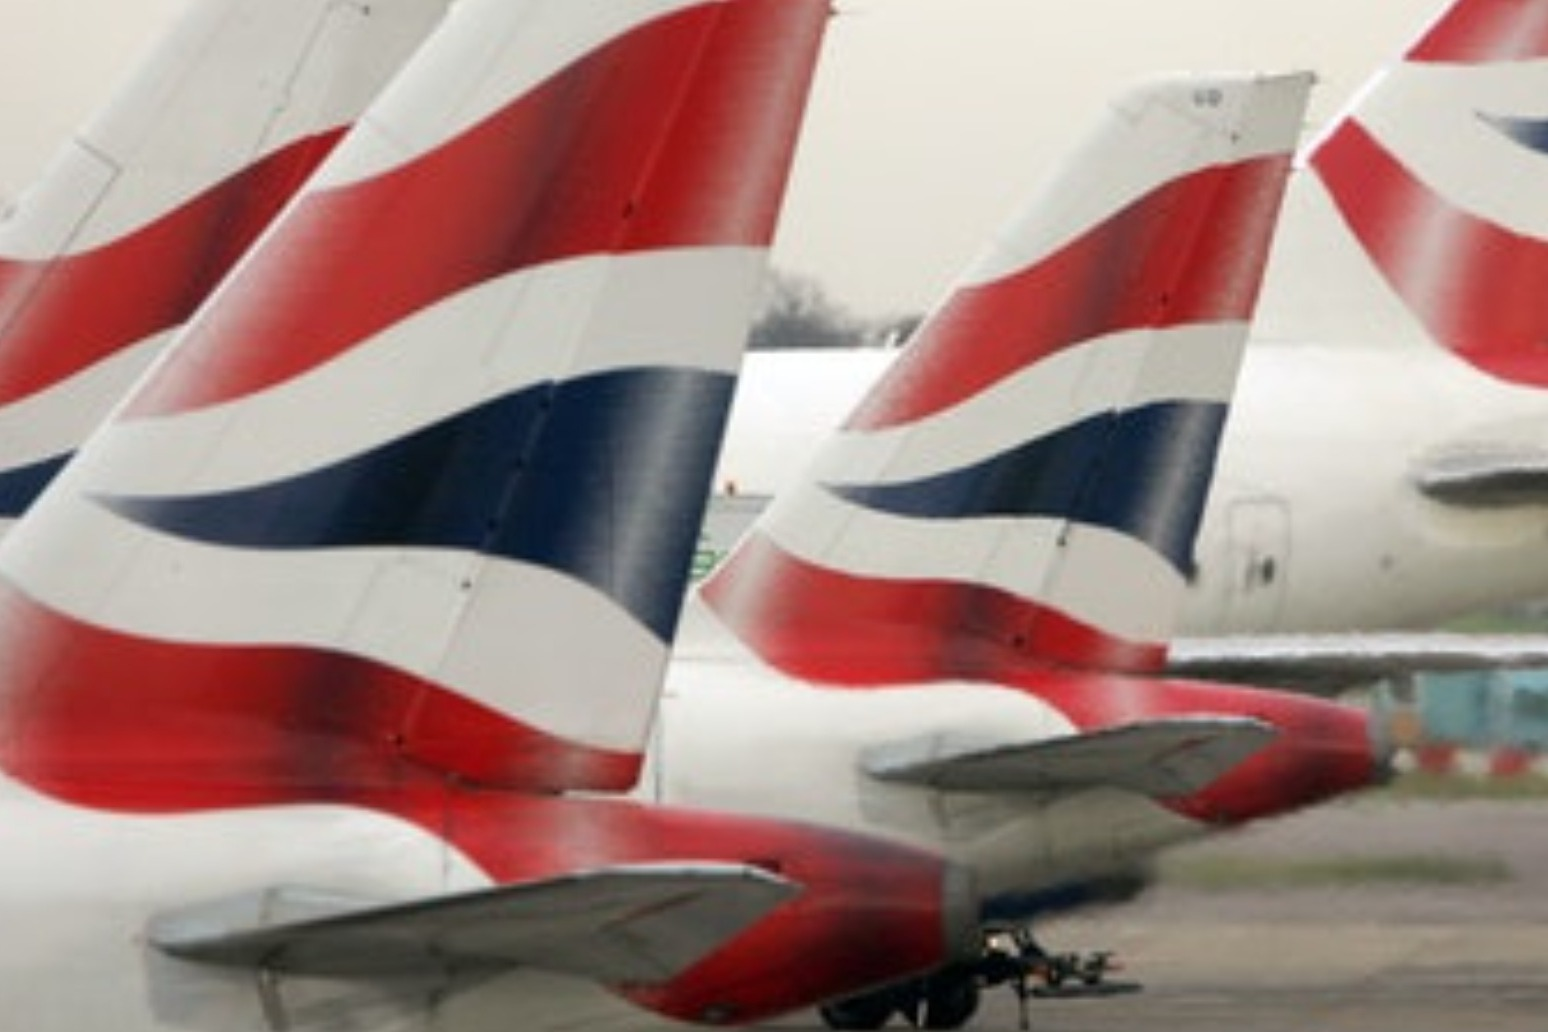 British Airways fined £20m over data hack